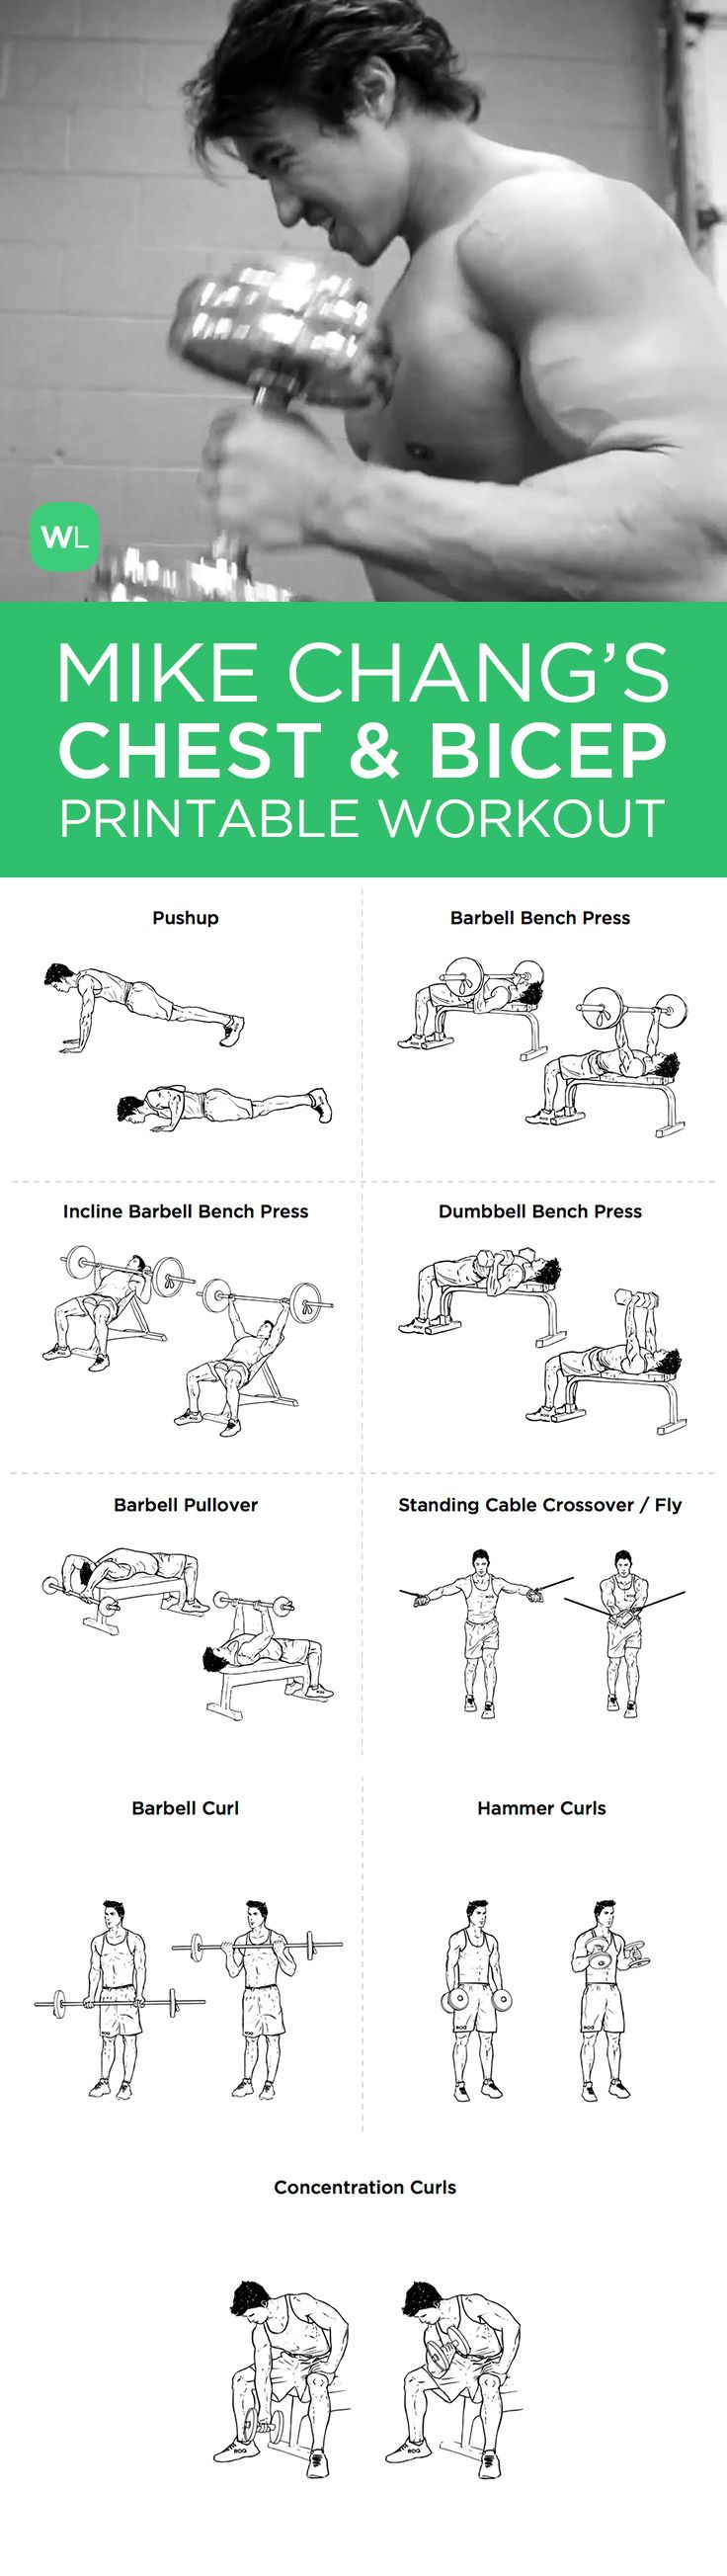 Visit http://workoutlabs.com/workout-plans/mike-changs-actual-chest-and-bicep-workout-printable-routine/ for a FREE PDF of Mike Chang's Chest and Bicep printable workout with easy-to-follow exercise illustrations.